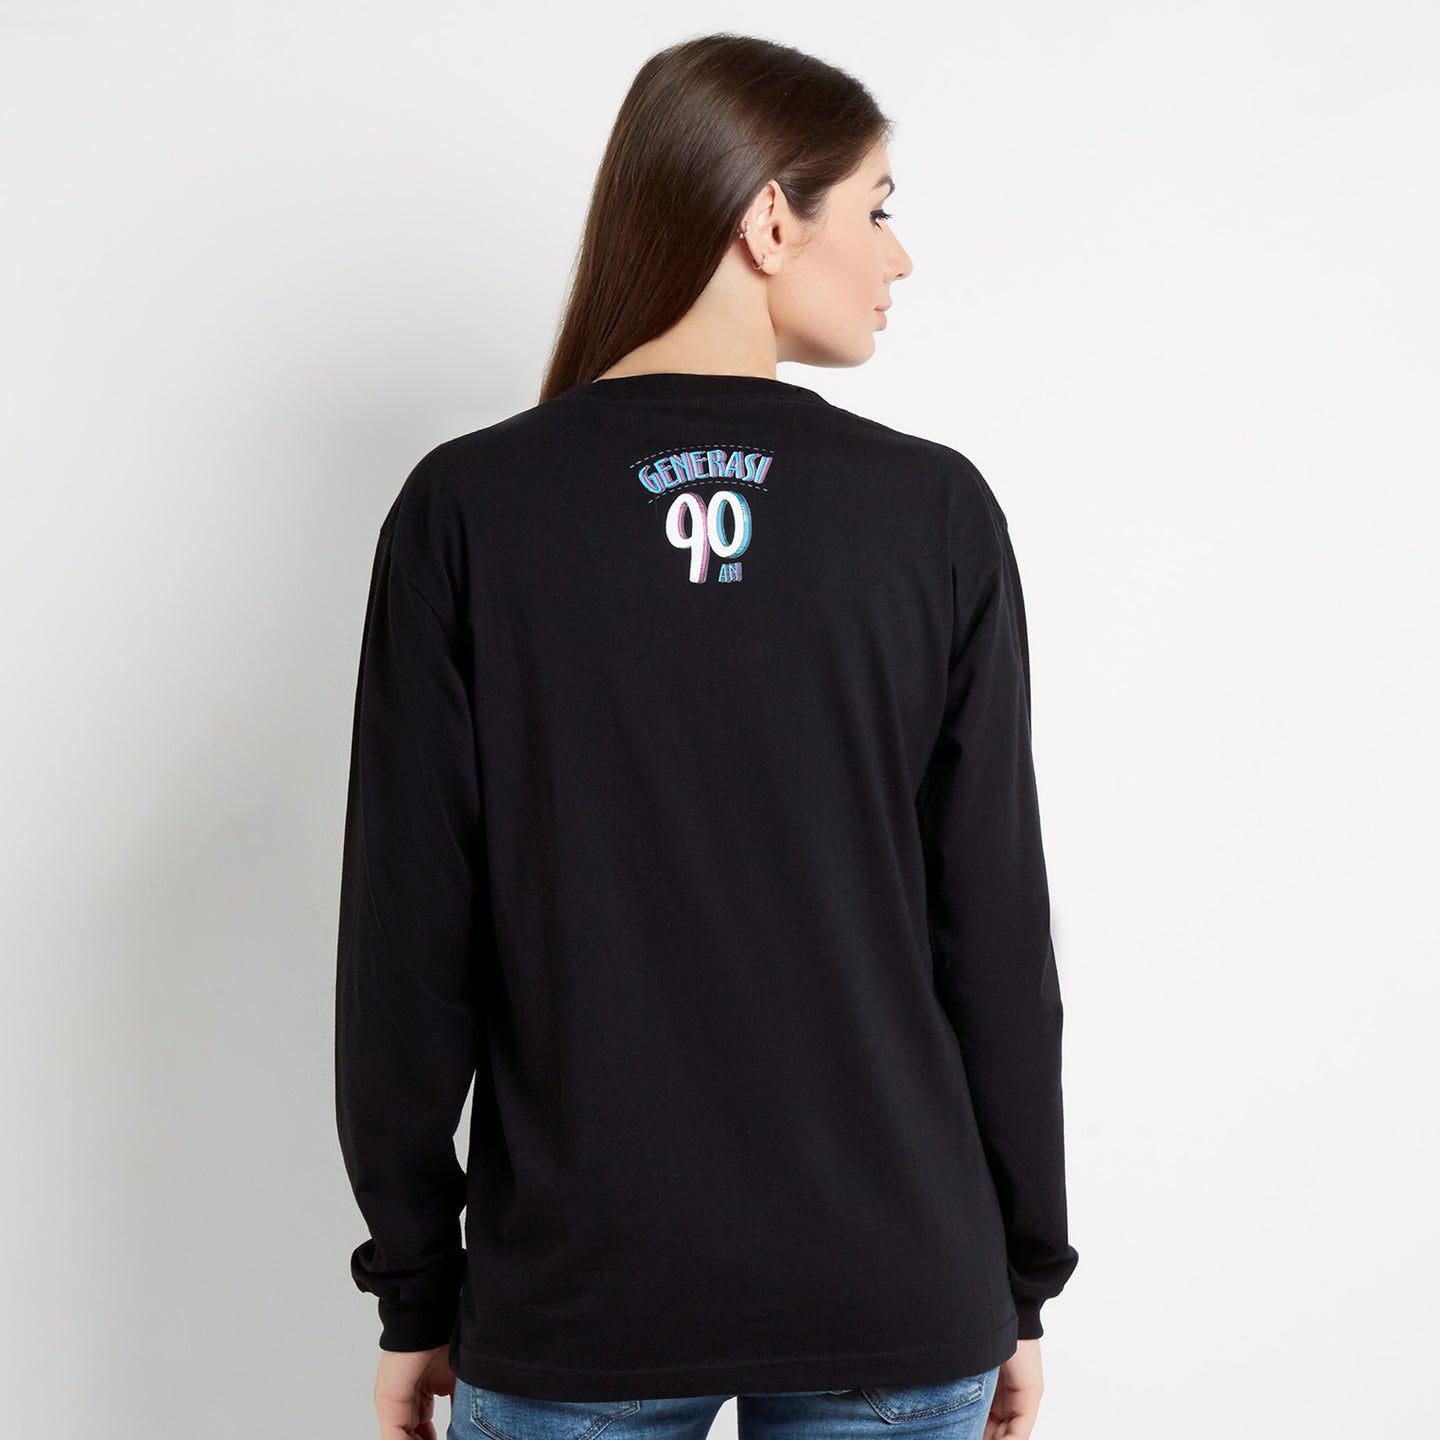 T-shirt Logo Pesawat Long Sleeve Black